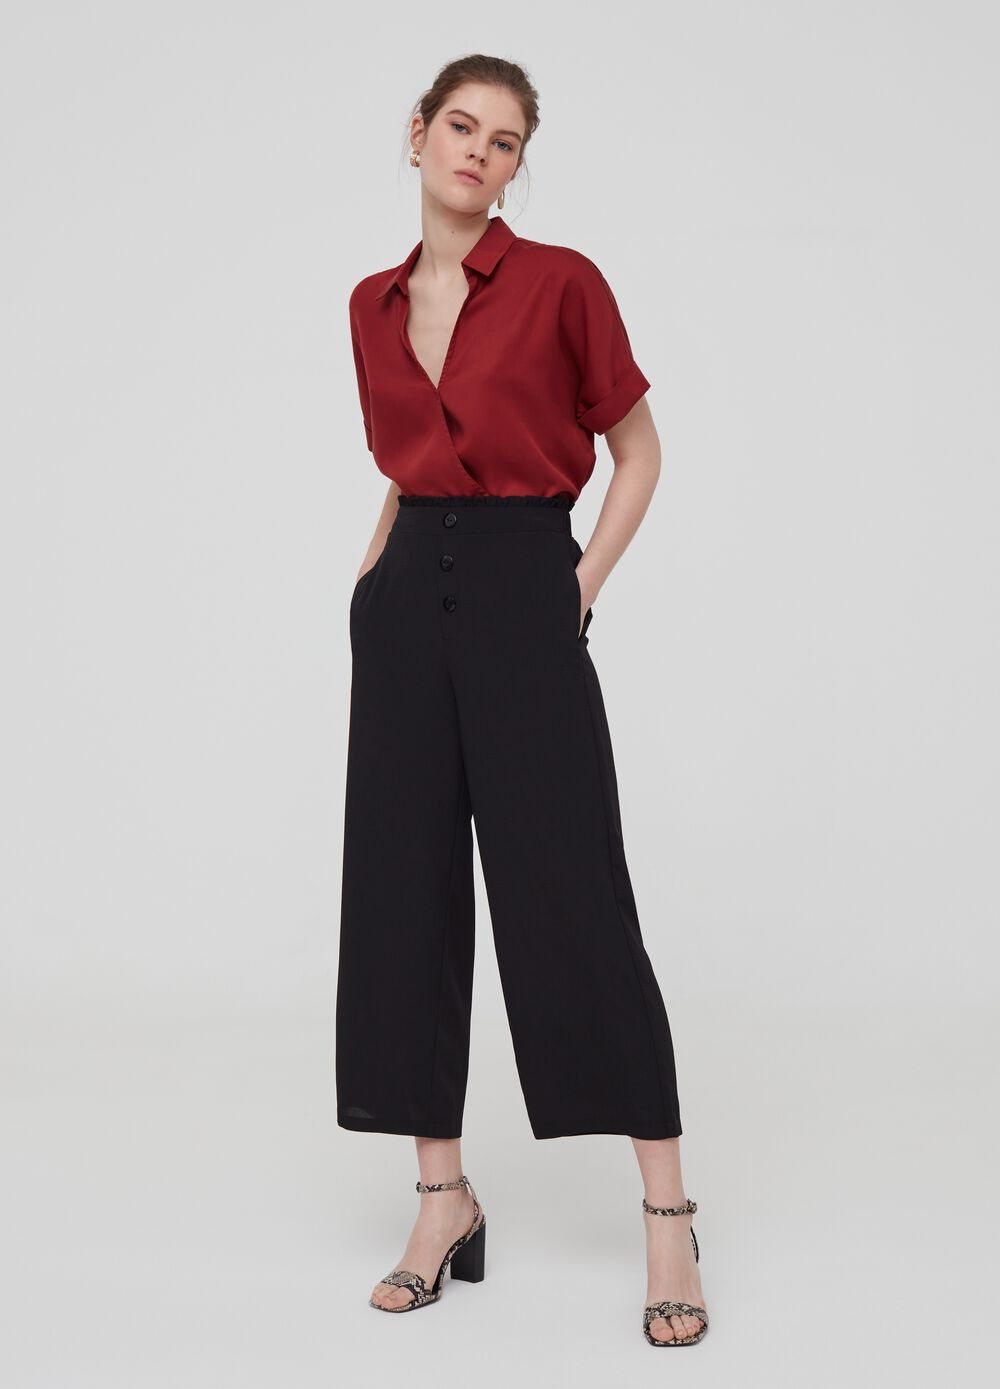 Flared trousers with high waist